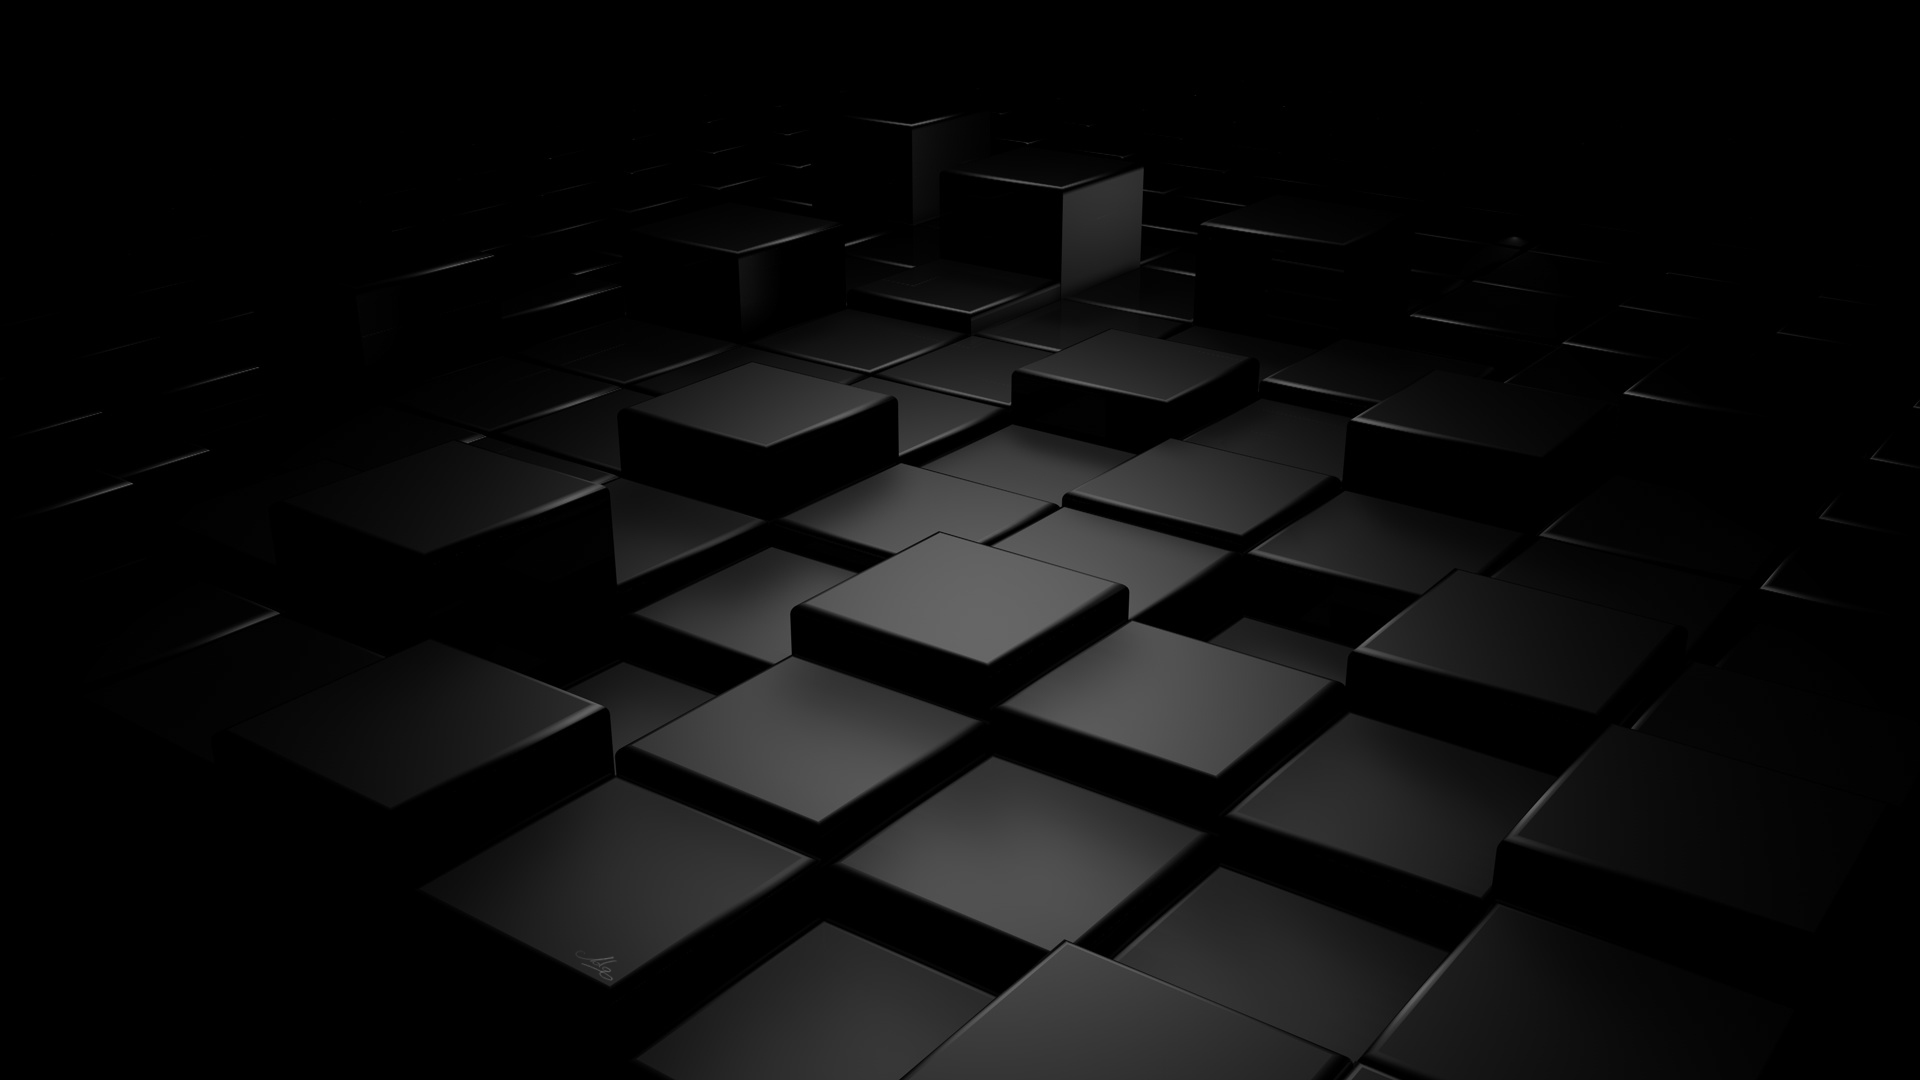 rendering shapes visualization cubes figures background 1920x1080